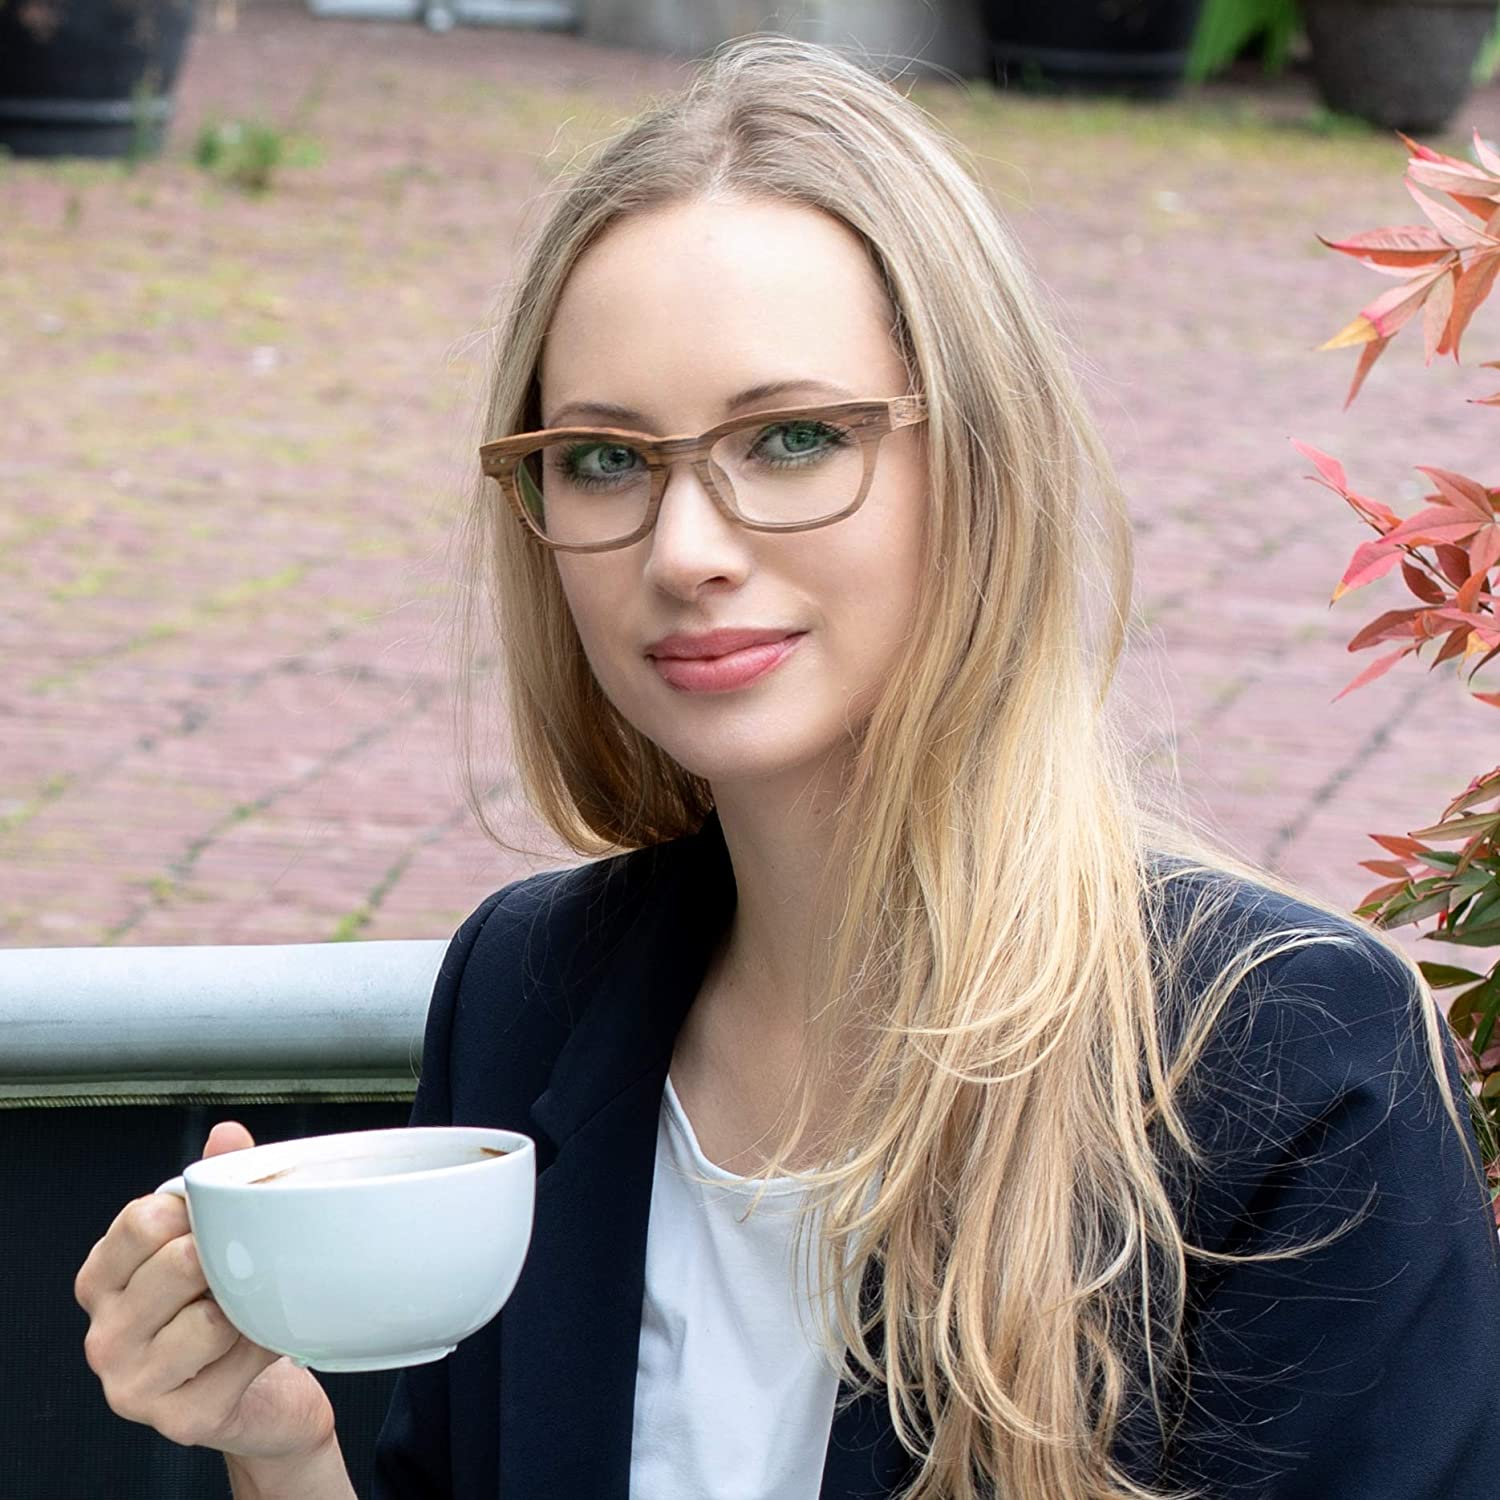 8643bdcd31 Amazon.com  Seymour and Smith Yaletown Yew Reading Glasses for Men and  Women (Blonde Wood